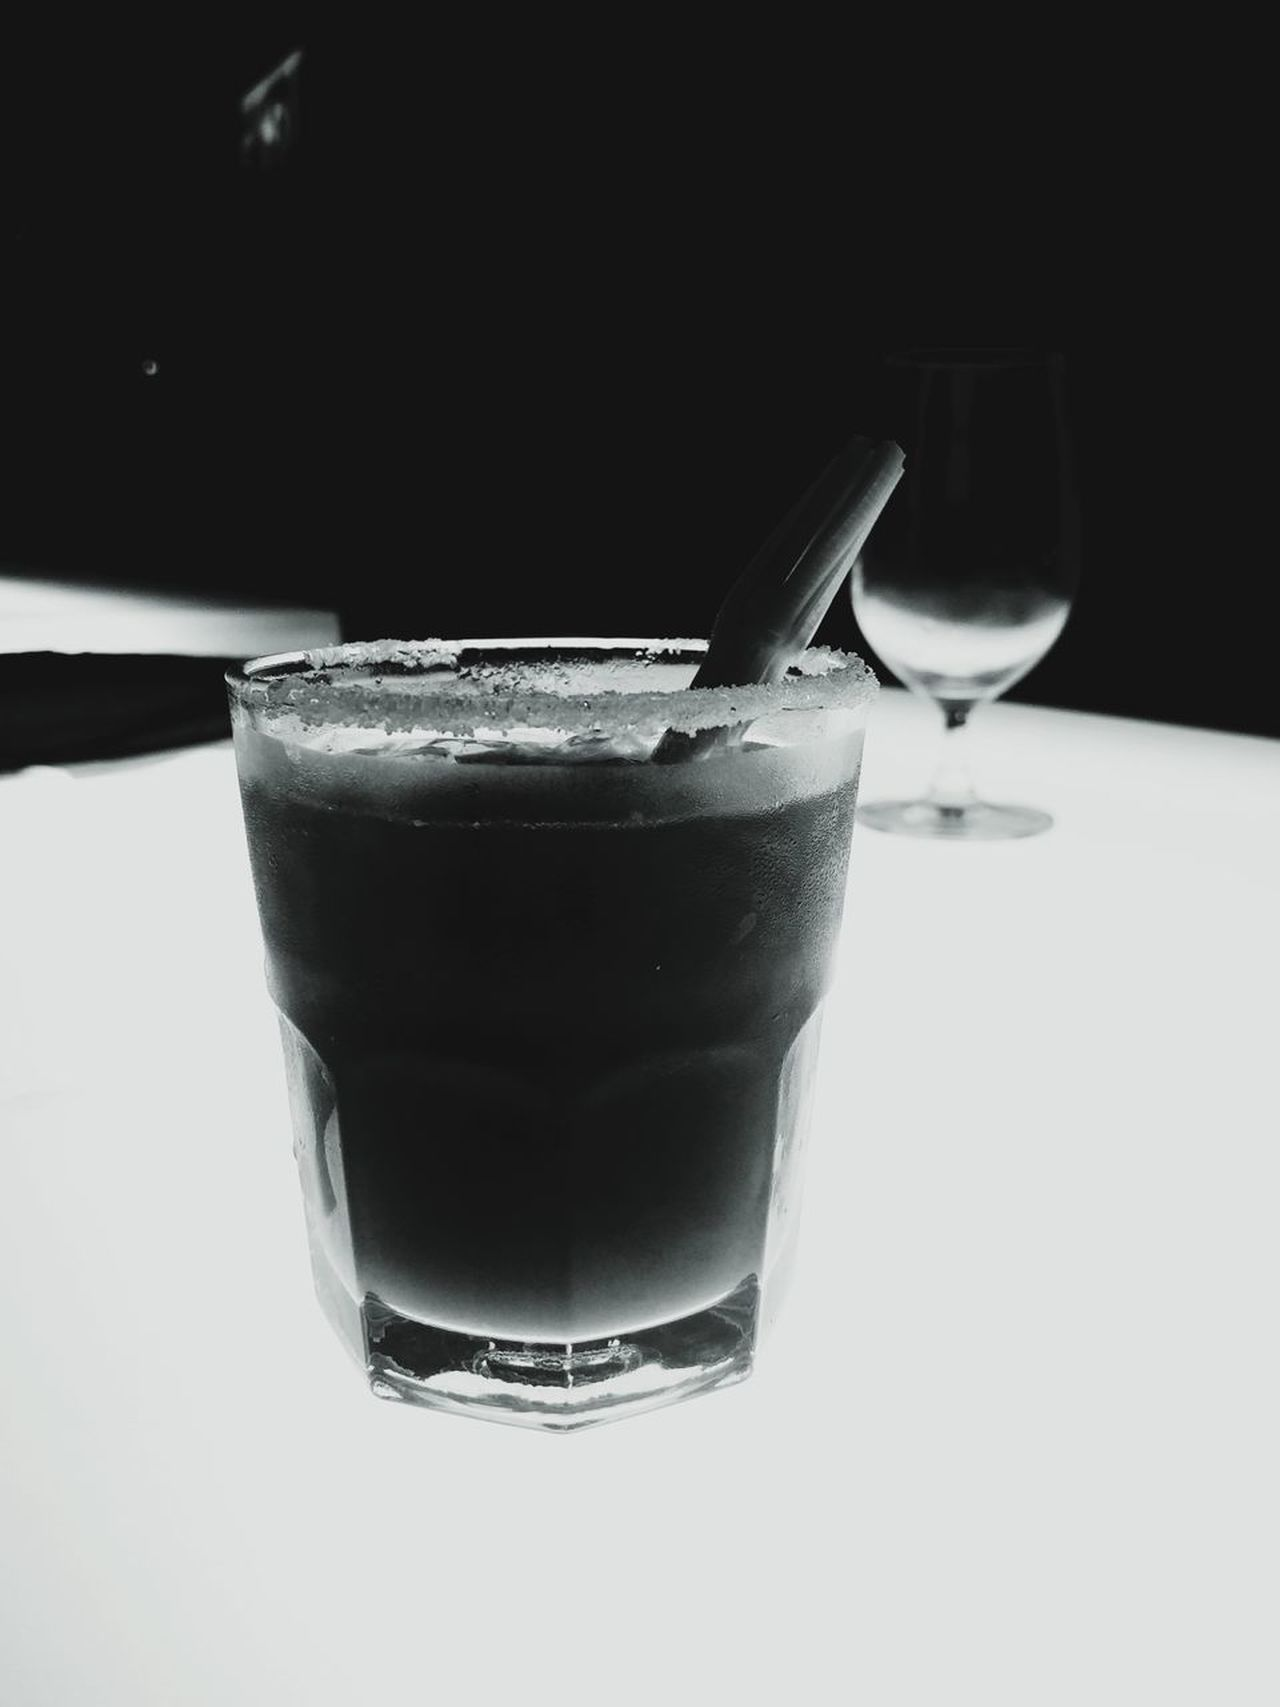 Drink Drinking Glass Food And Drink Refreshment No People Indoors  Freshness Alcohol Close-up Salt Oneplus2 Hypocam Black And White Photography Black And White EyeEm Best Shots - Black + White Eyeemedit Hyderabad,India The Lal Street Pub